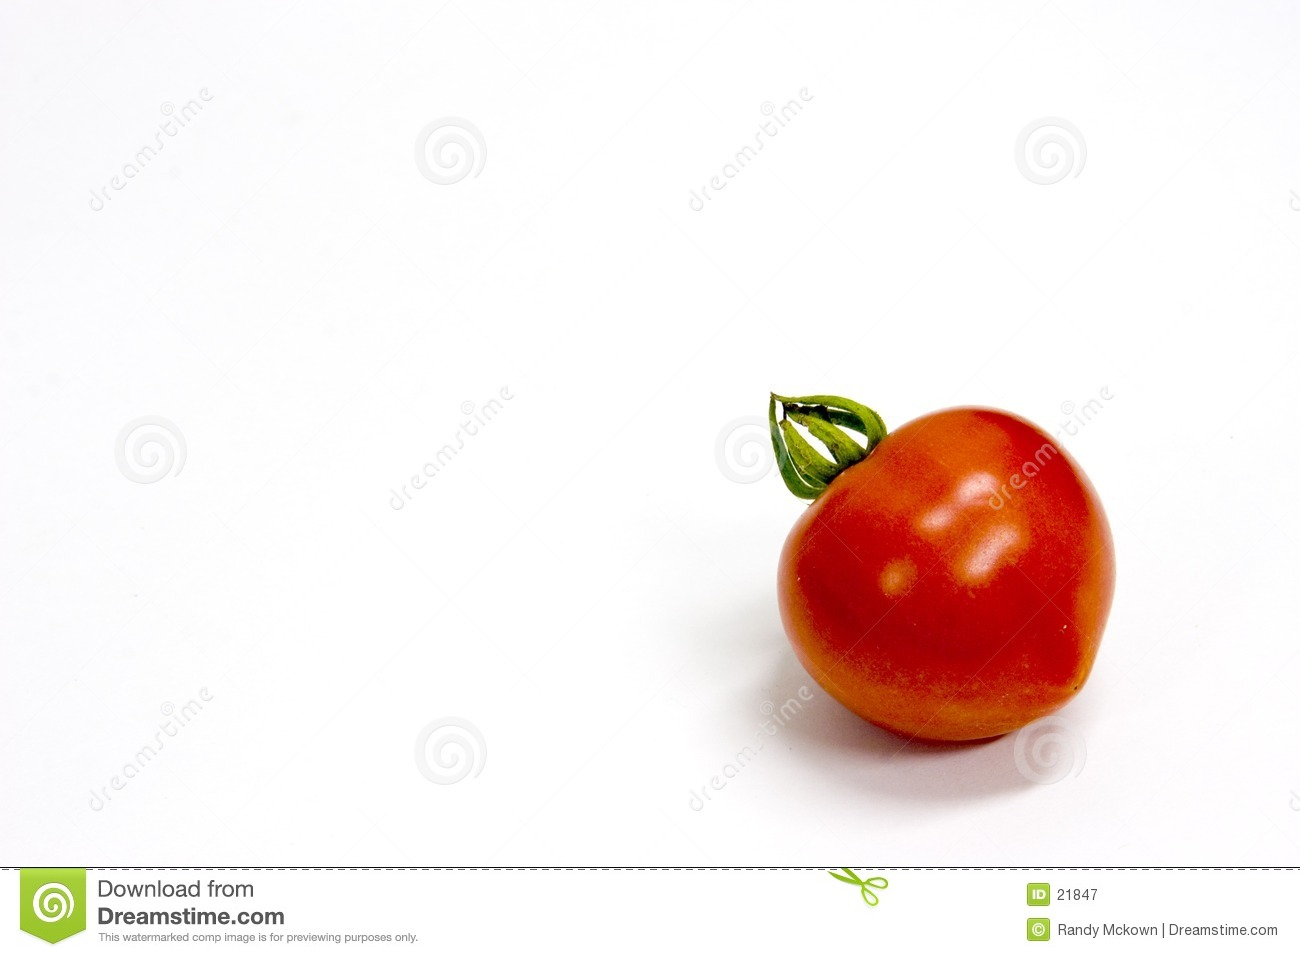 Tomatoe de raisin